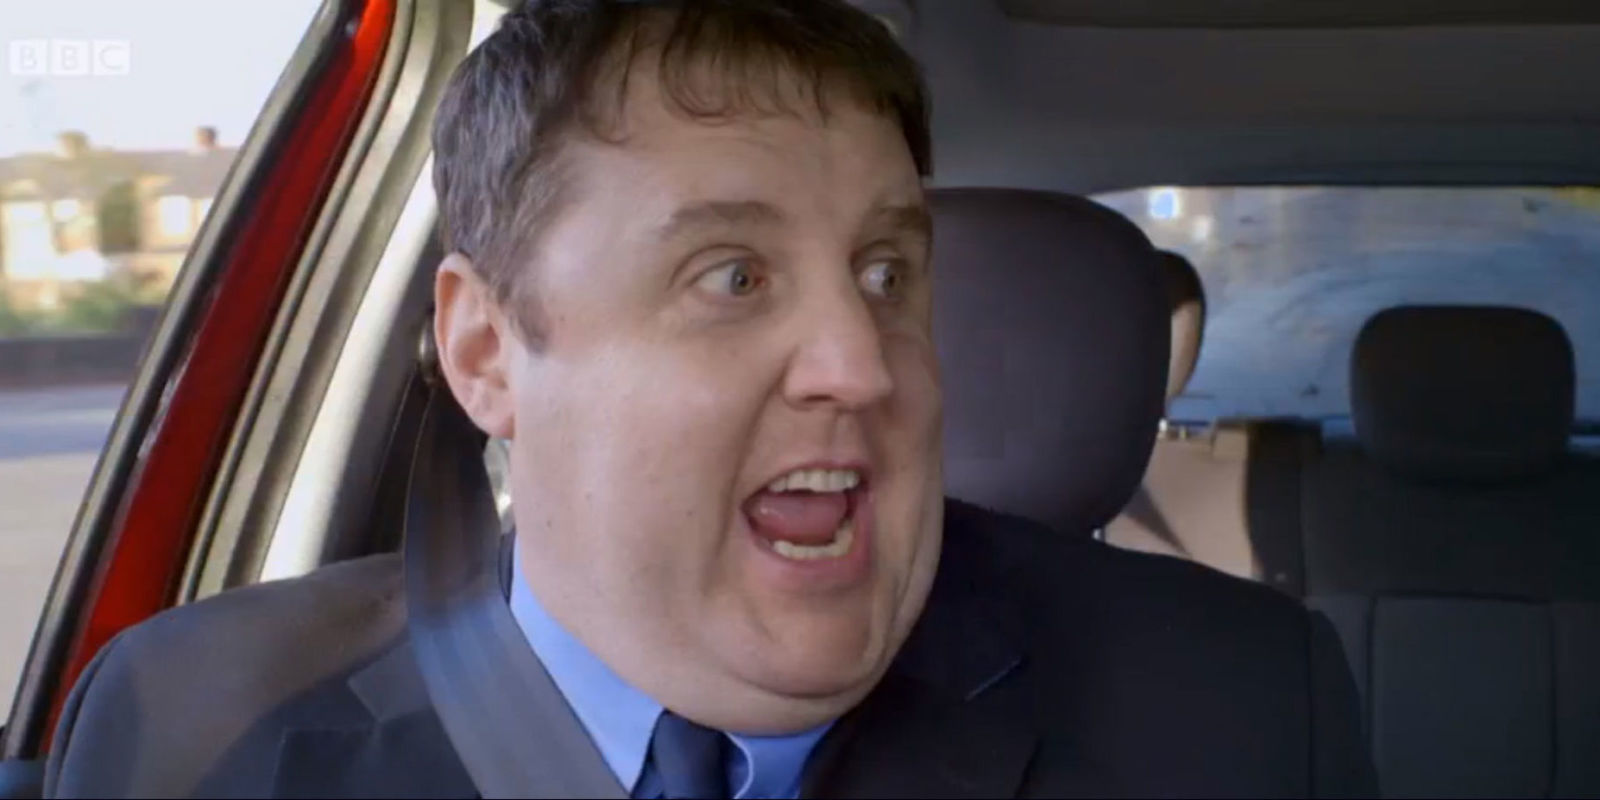 Fans To Present Peter Kay With Petition To Bring Back Car Share Fans To Present Peter Kay With Petition To Bring Back Car Share new photo